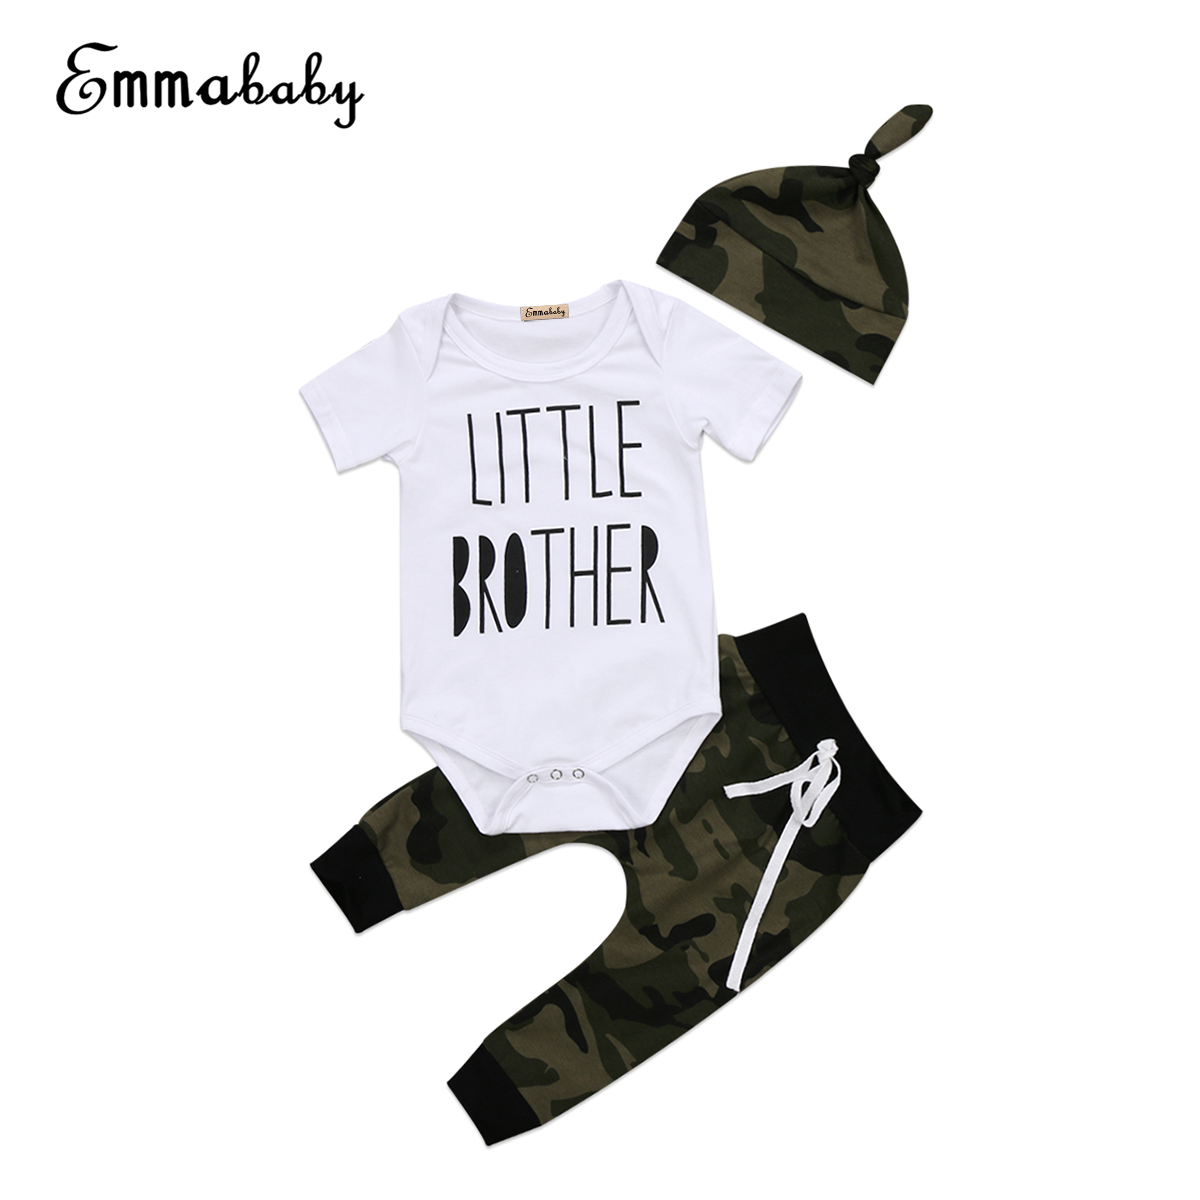 2018 New Baby Boys Clothes Set 3PCS/Set Cotton Camoflage Clothing Short Sleeve Romper Tops+Camo Pants Leggings Hat 3pcs Outfits